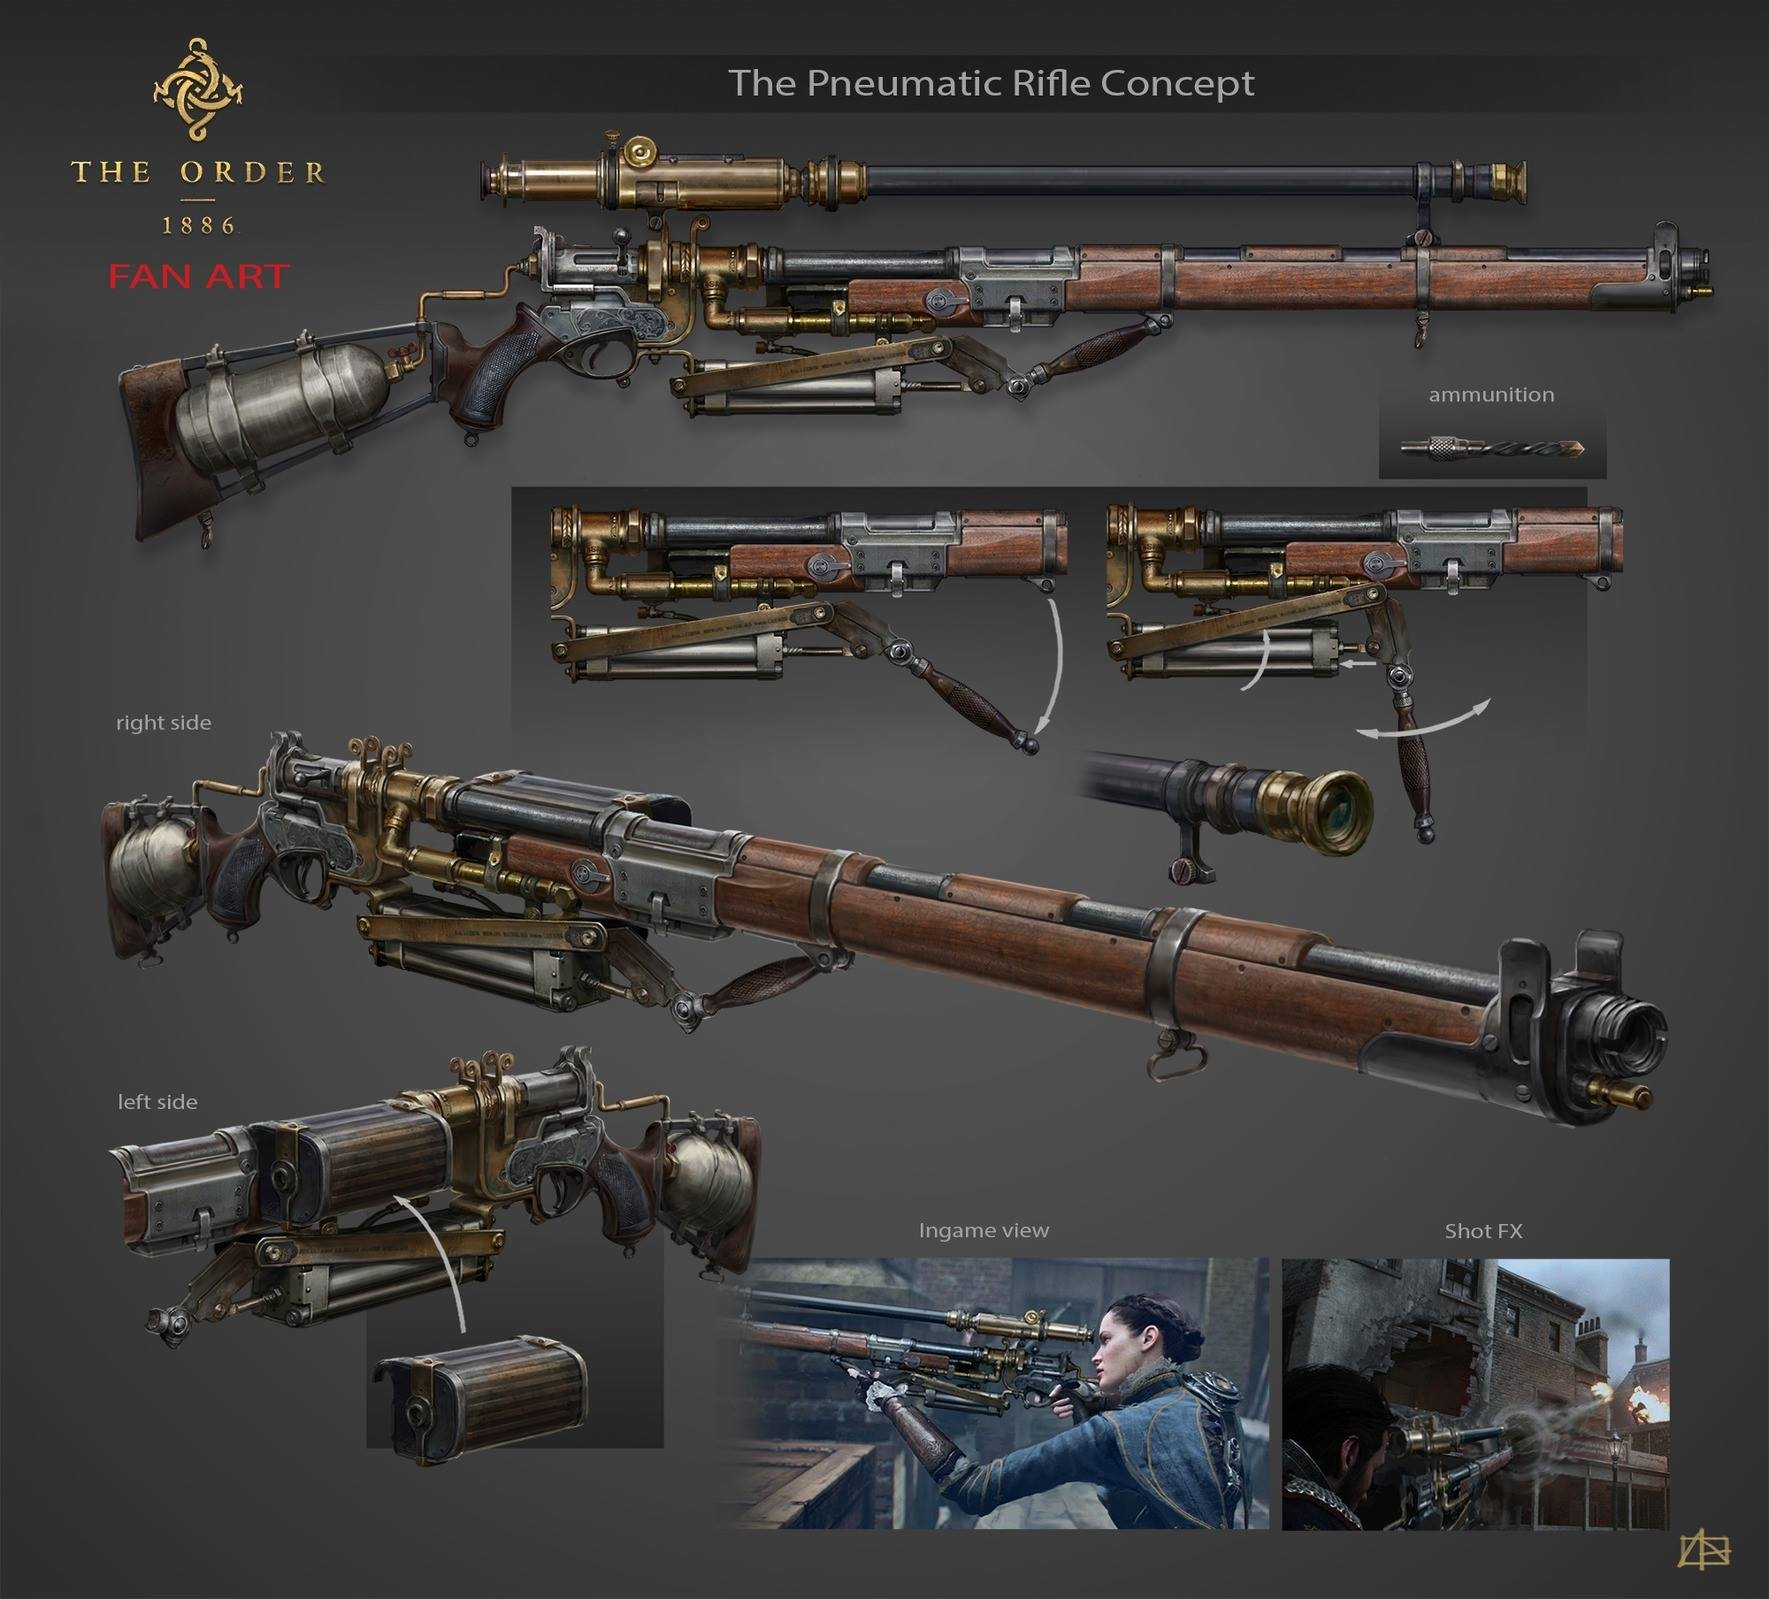 The Order 1886 Fanart - Pneumatic Rifle (looking for